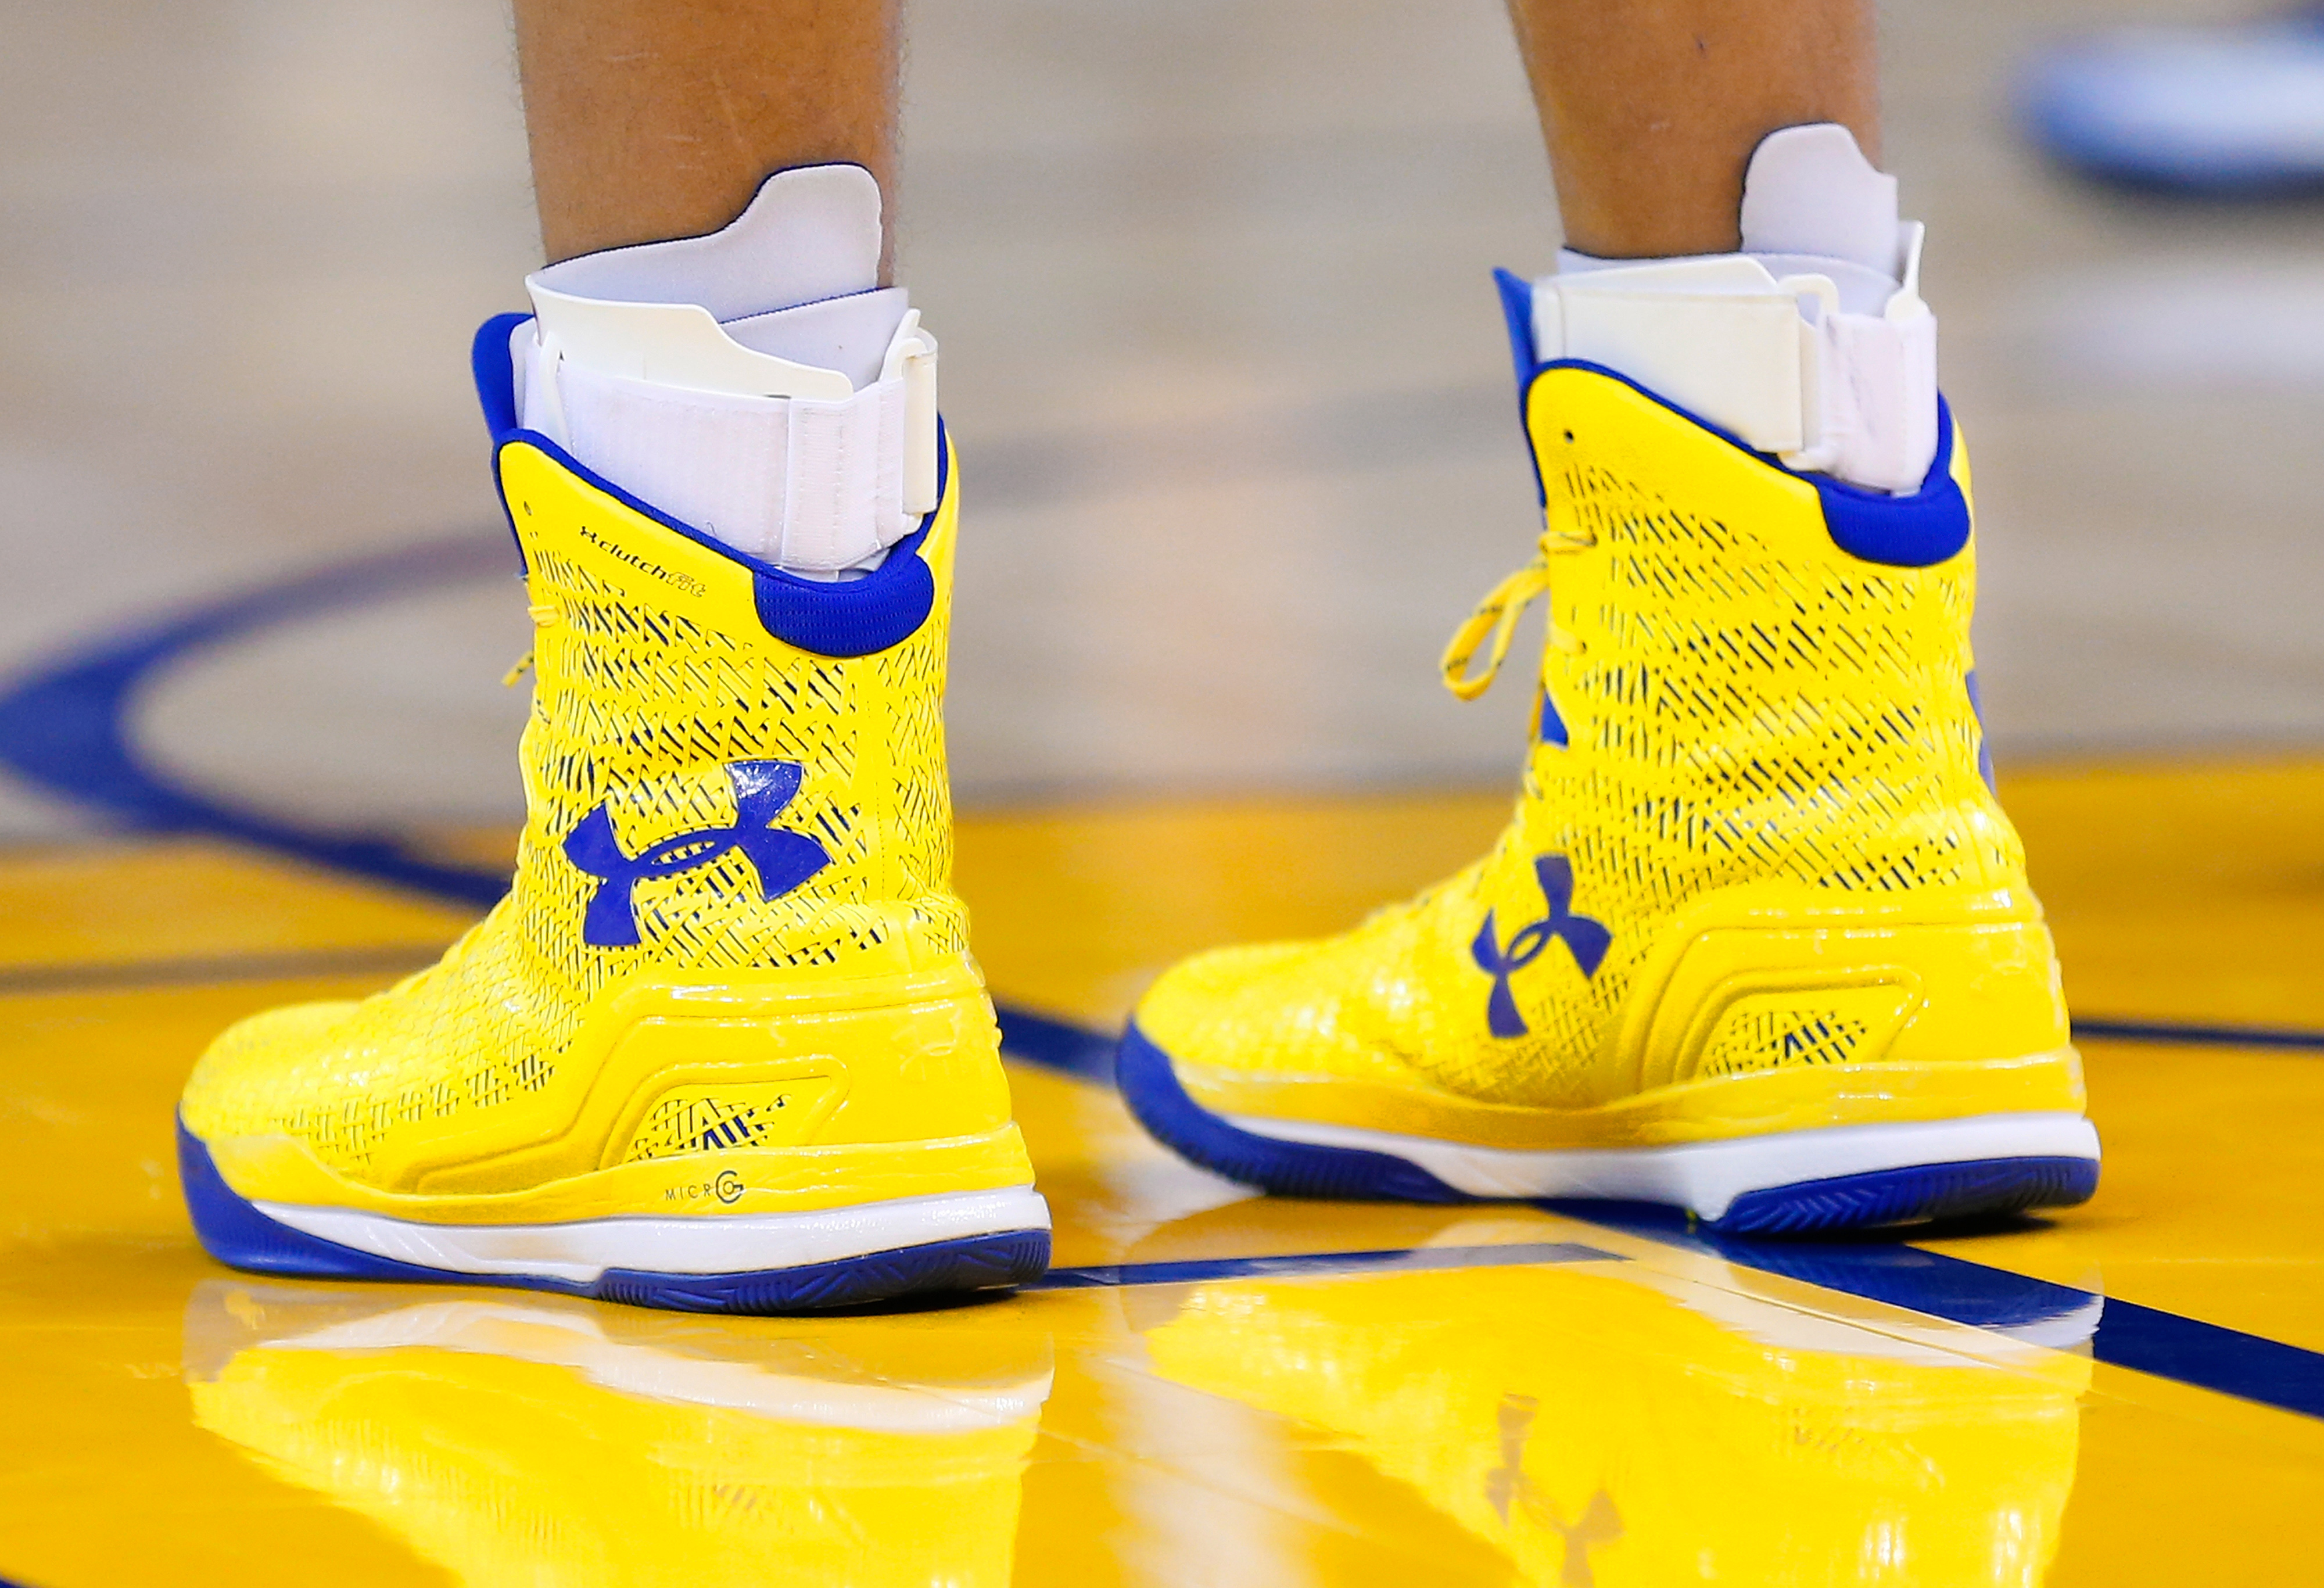 A detailed view of the Under Armour basketball shoes worn by Golden State Warriors guard Stephen Curry #30 against the Utah Jazz at ORACLE Arena on November 21, 2014 in Oakland, California.